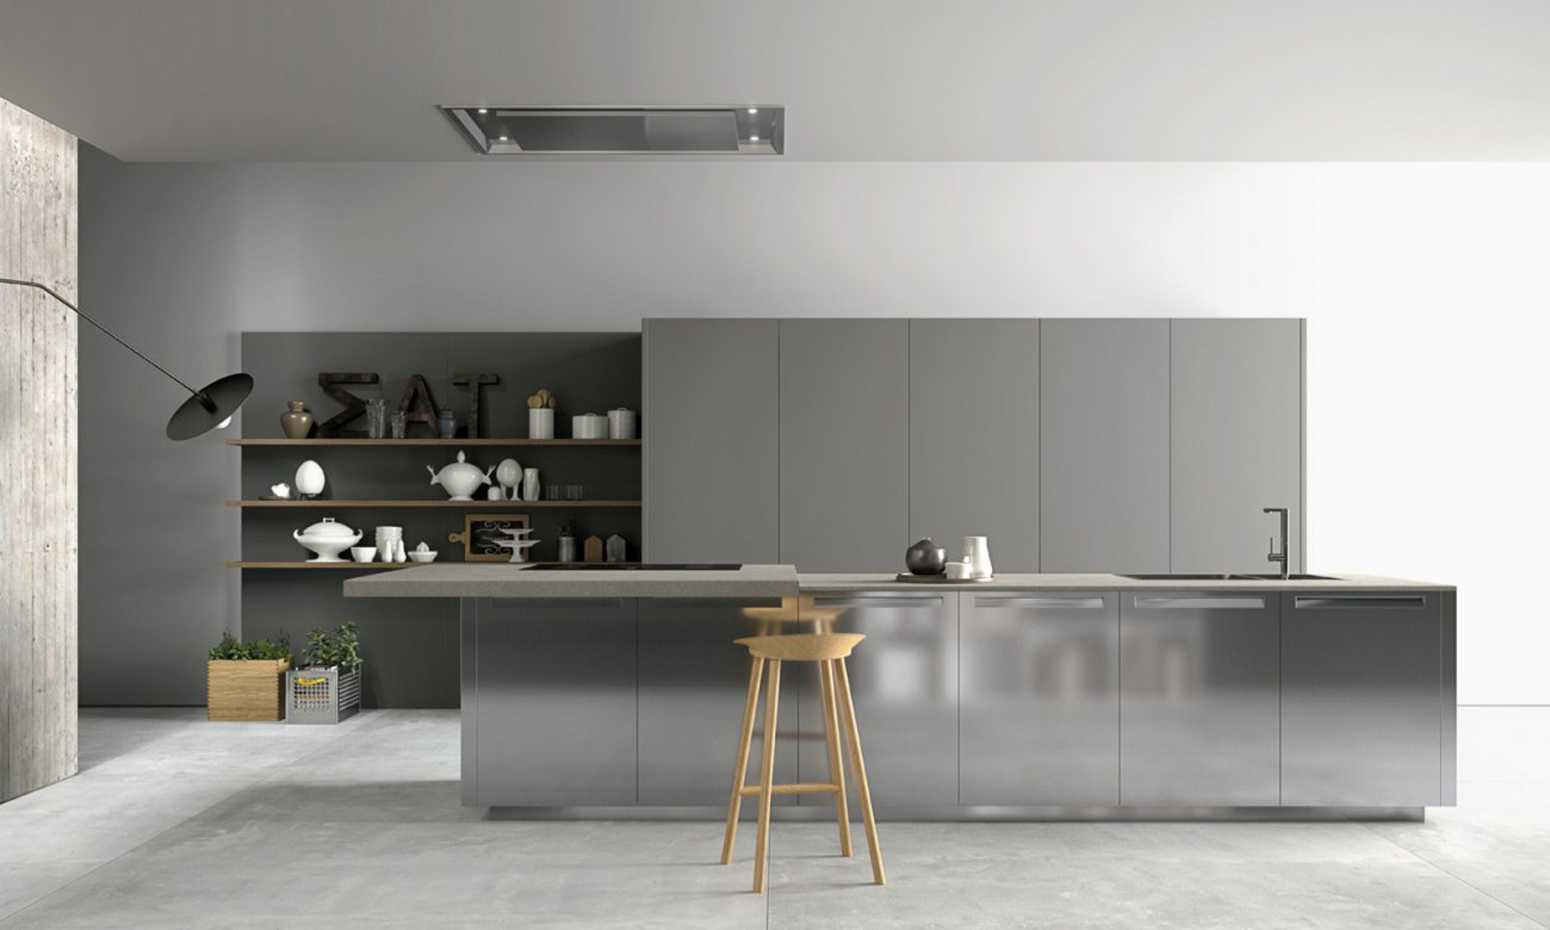 Extra by Doimo Cucine product image 3